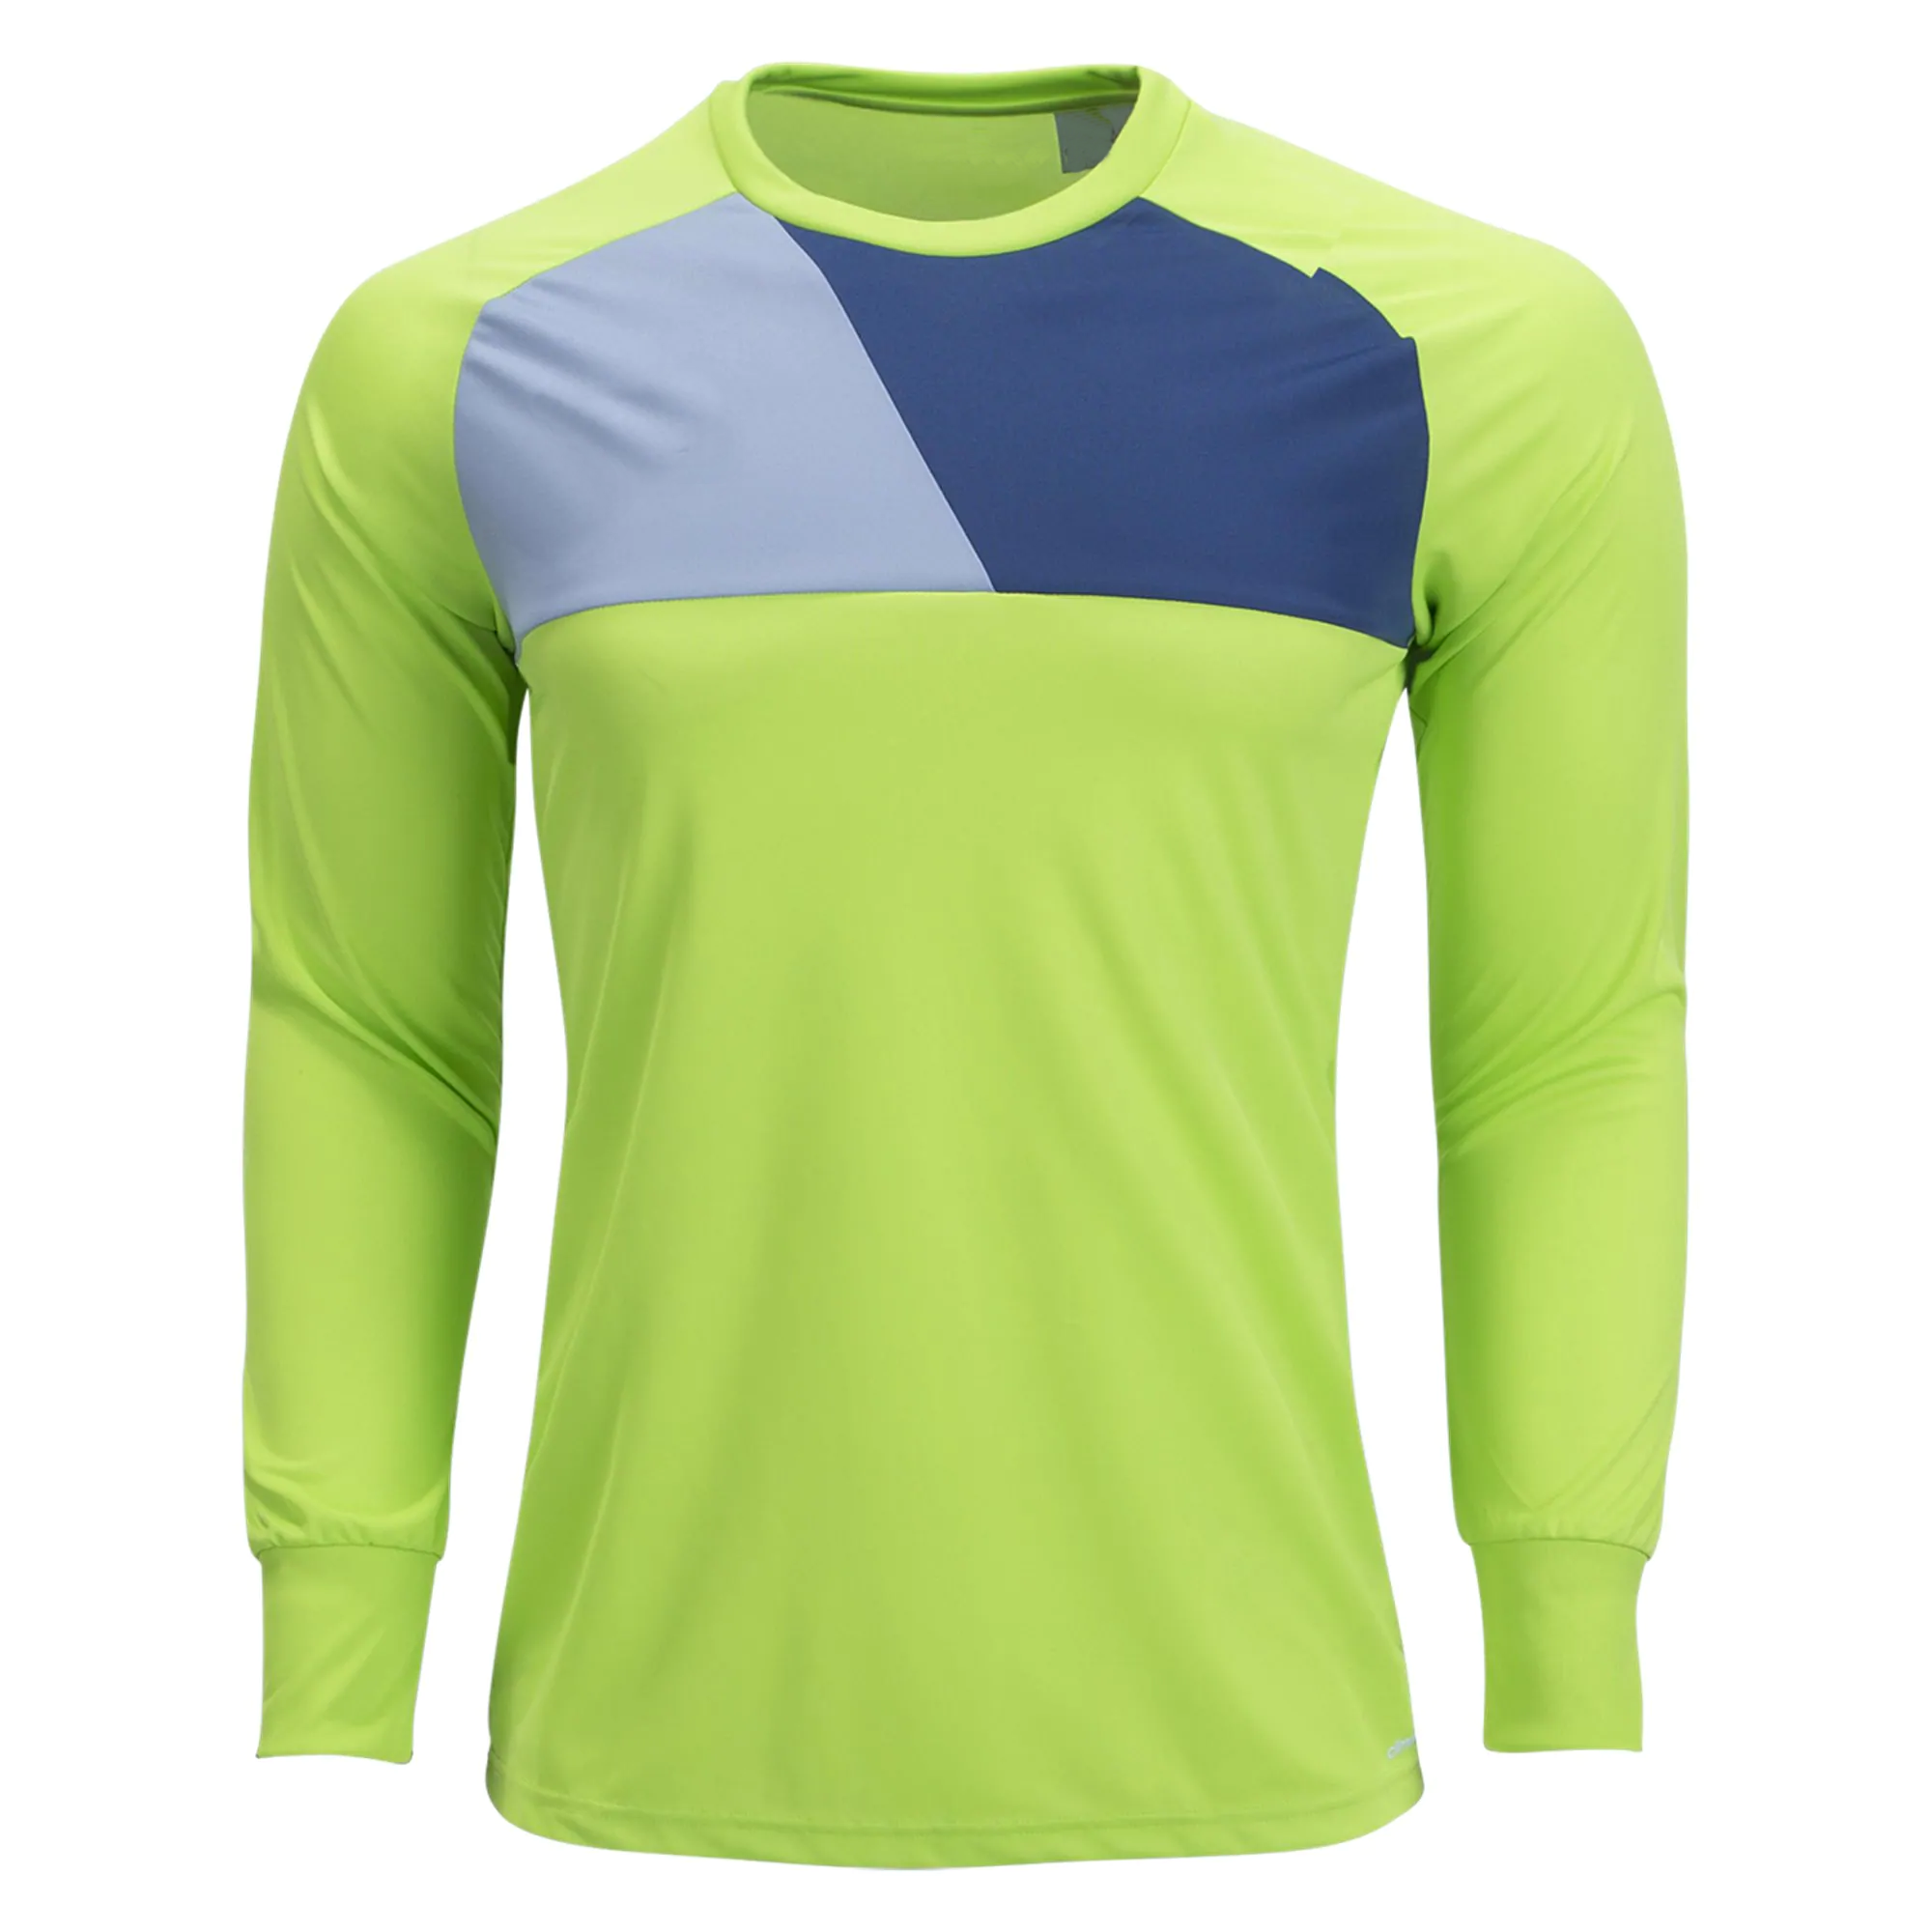 Padded Elbows Goalkeeper Jersey Soccer Wear Wholesale Prices Excellent Quality